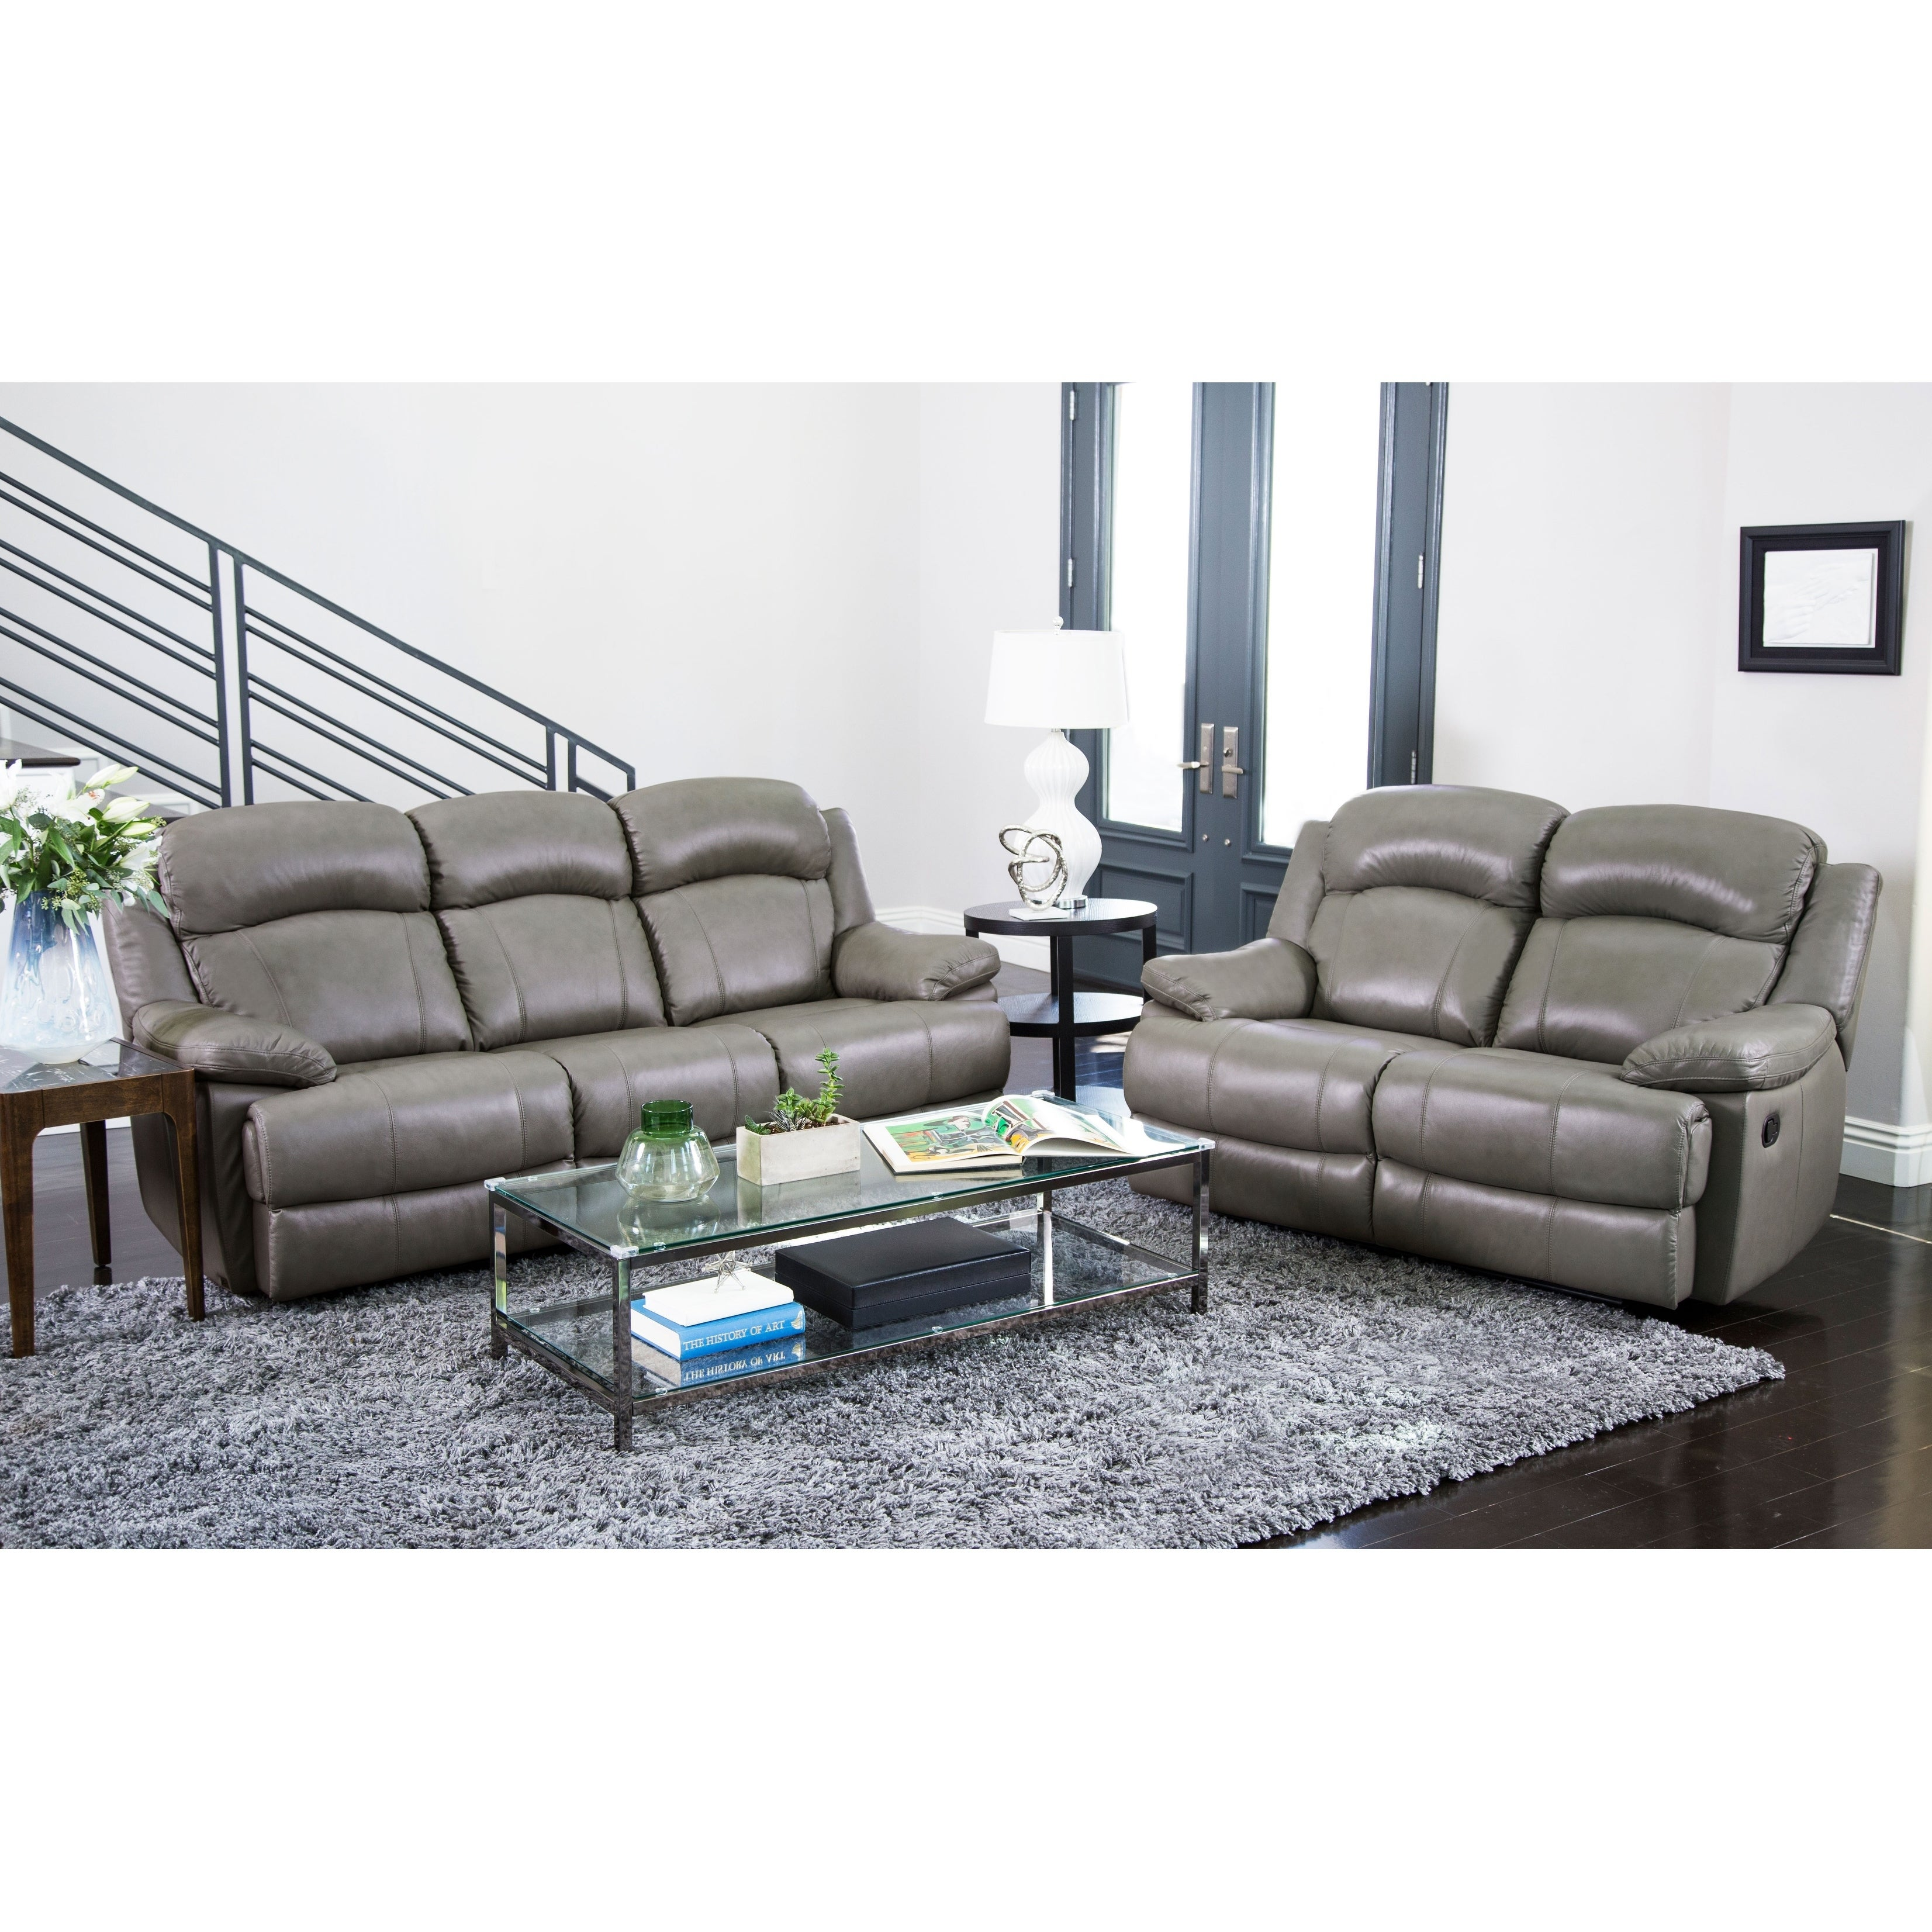 Abbyson Clarence Grey Top Grain Leather Reclining 2 Piece Living Room Set